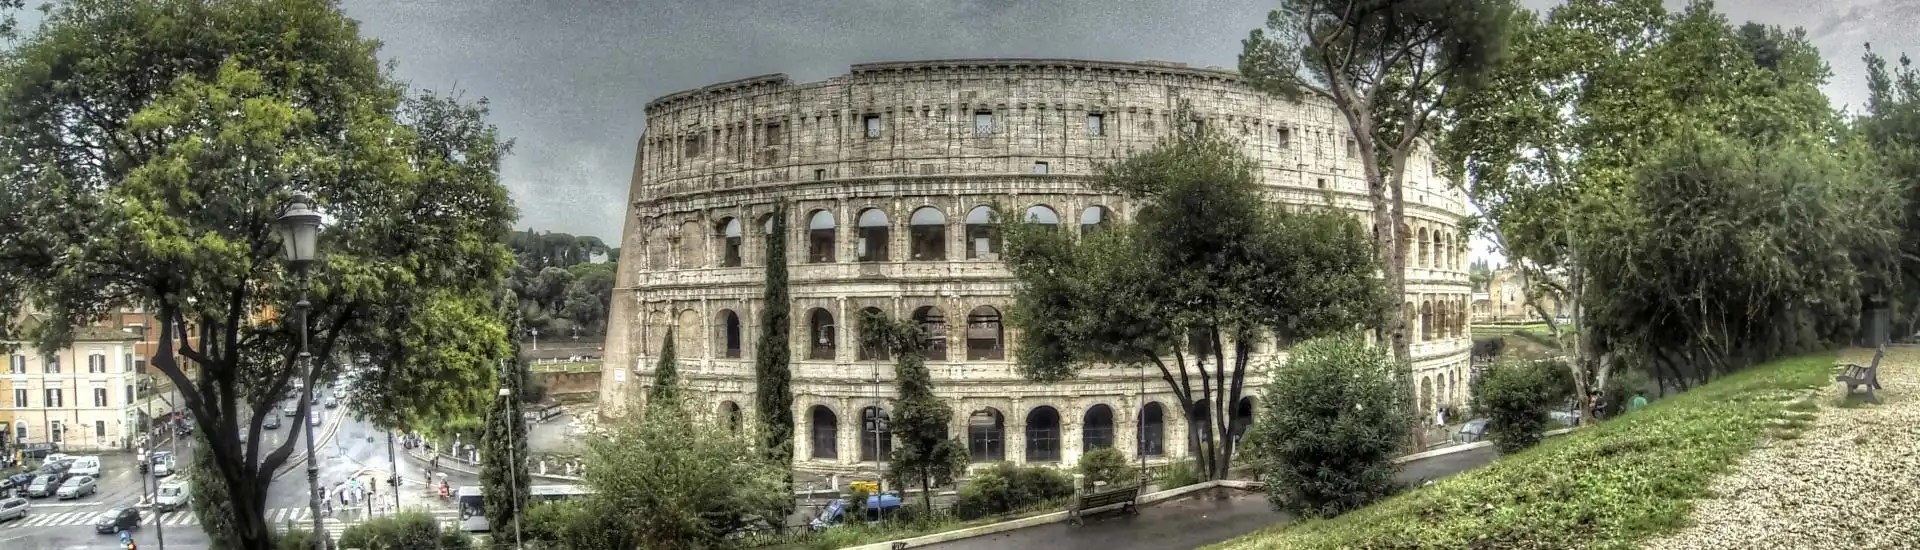 Irish Rugby Tours to Italy - Rome